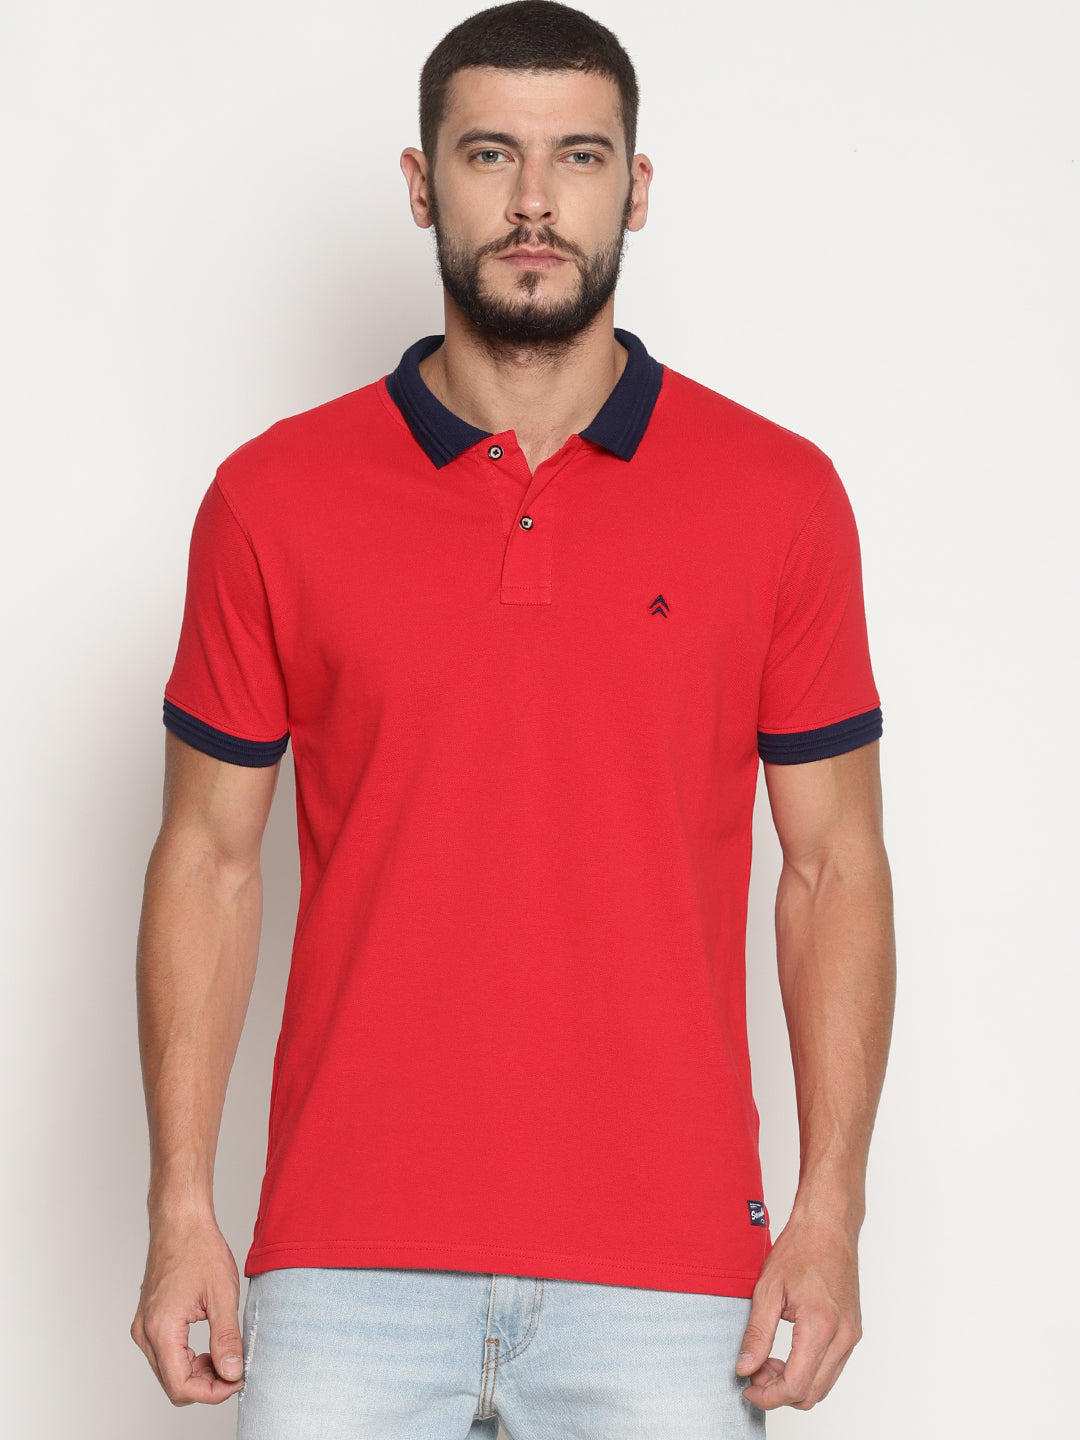 Men's Brick Red Solid Polo T-Shirt